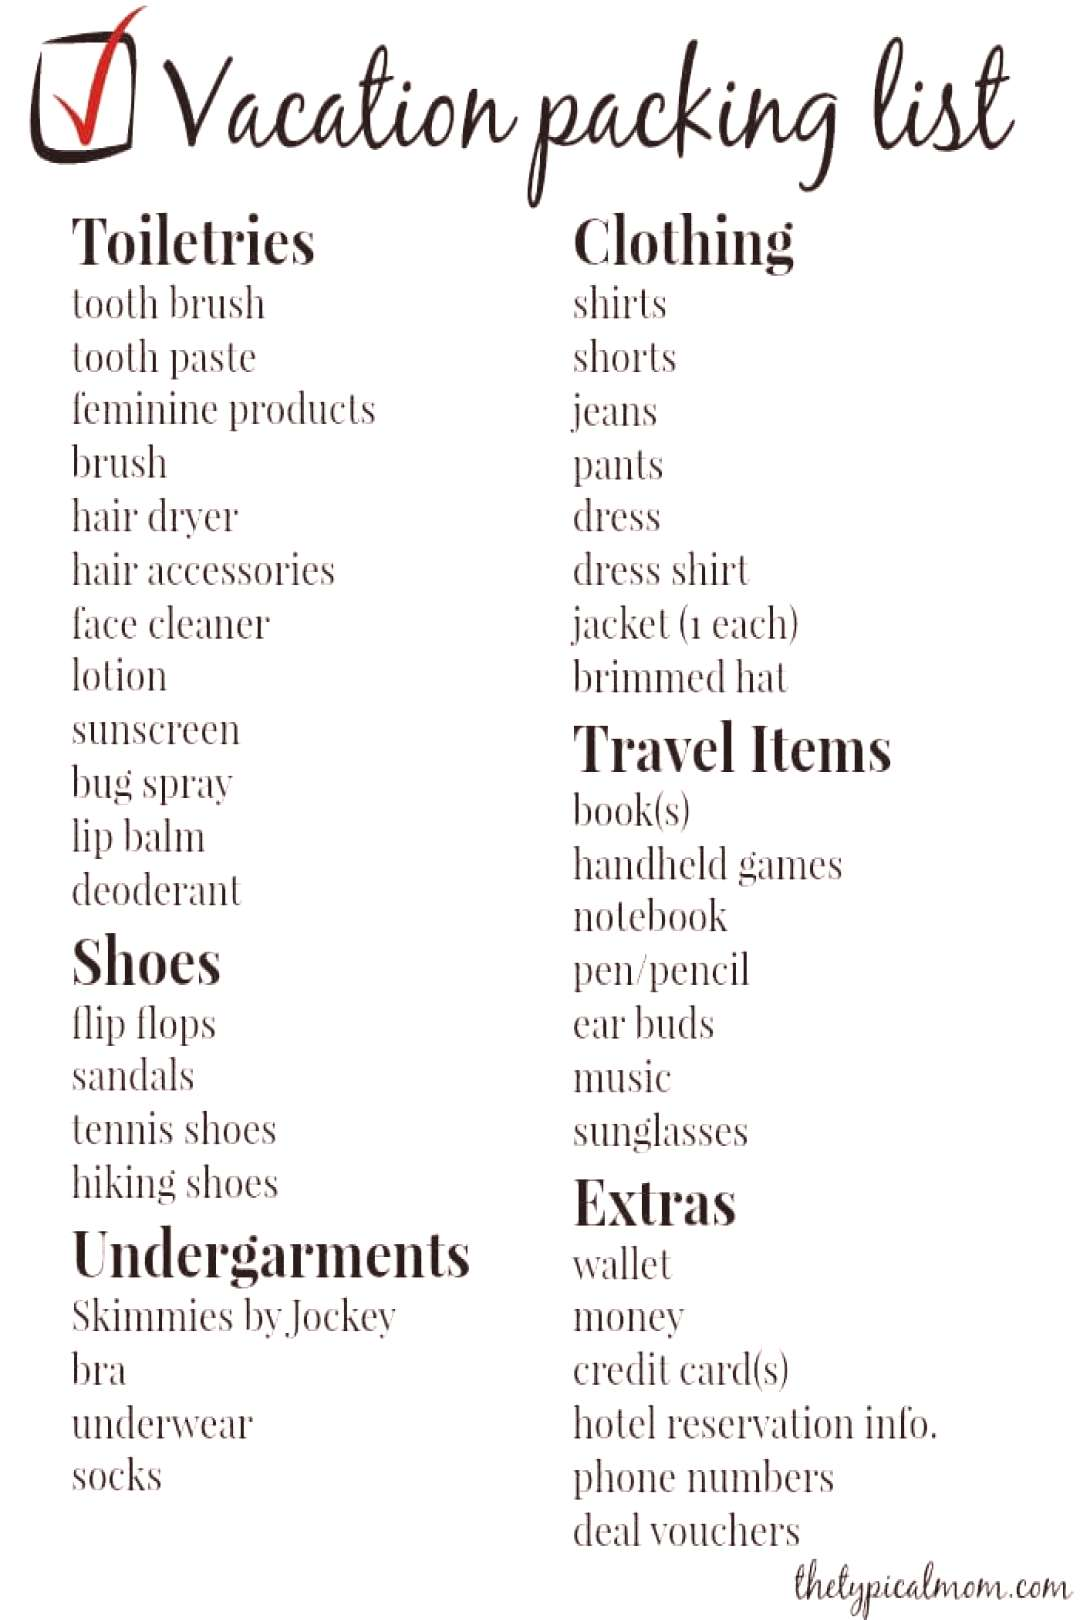 Vacation Packing List Free printable vacation packing list plus tips and tricks on what to pack whe